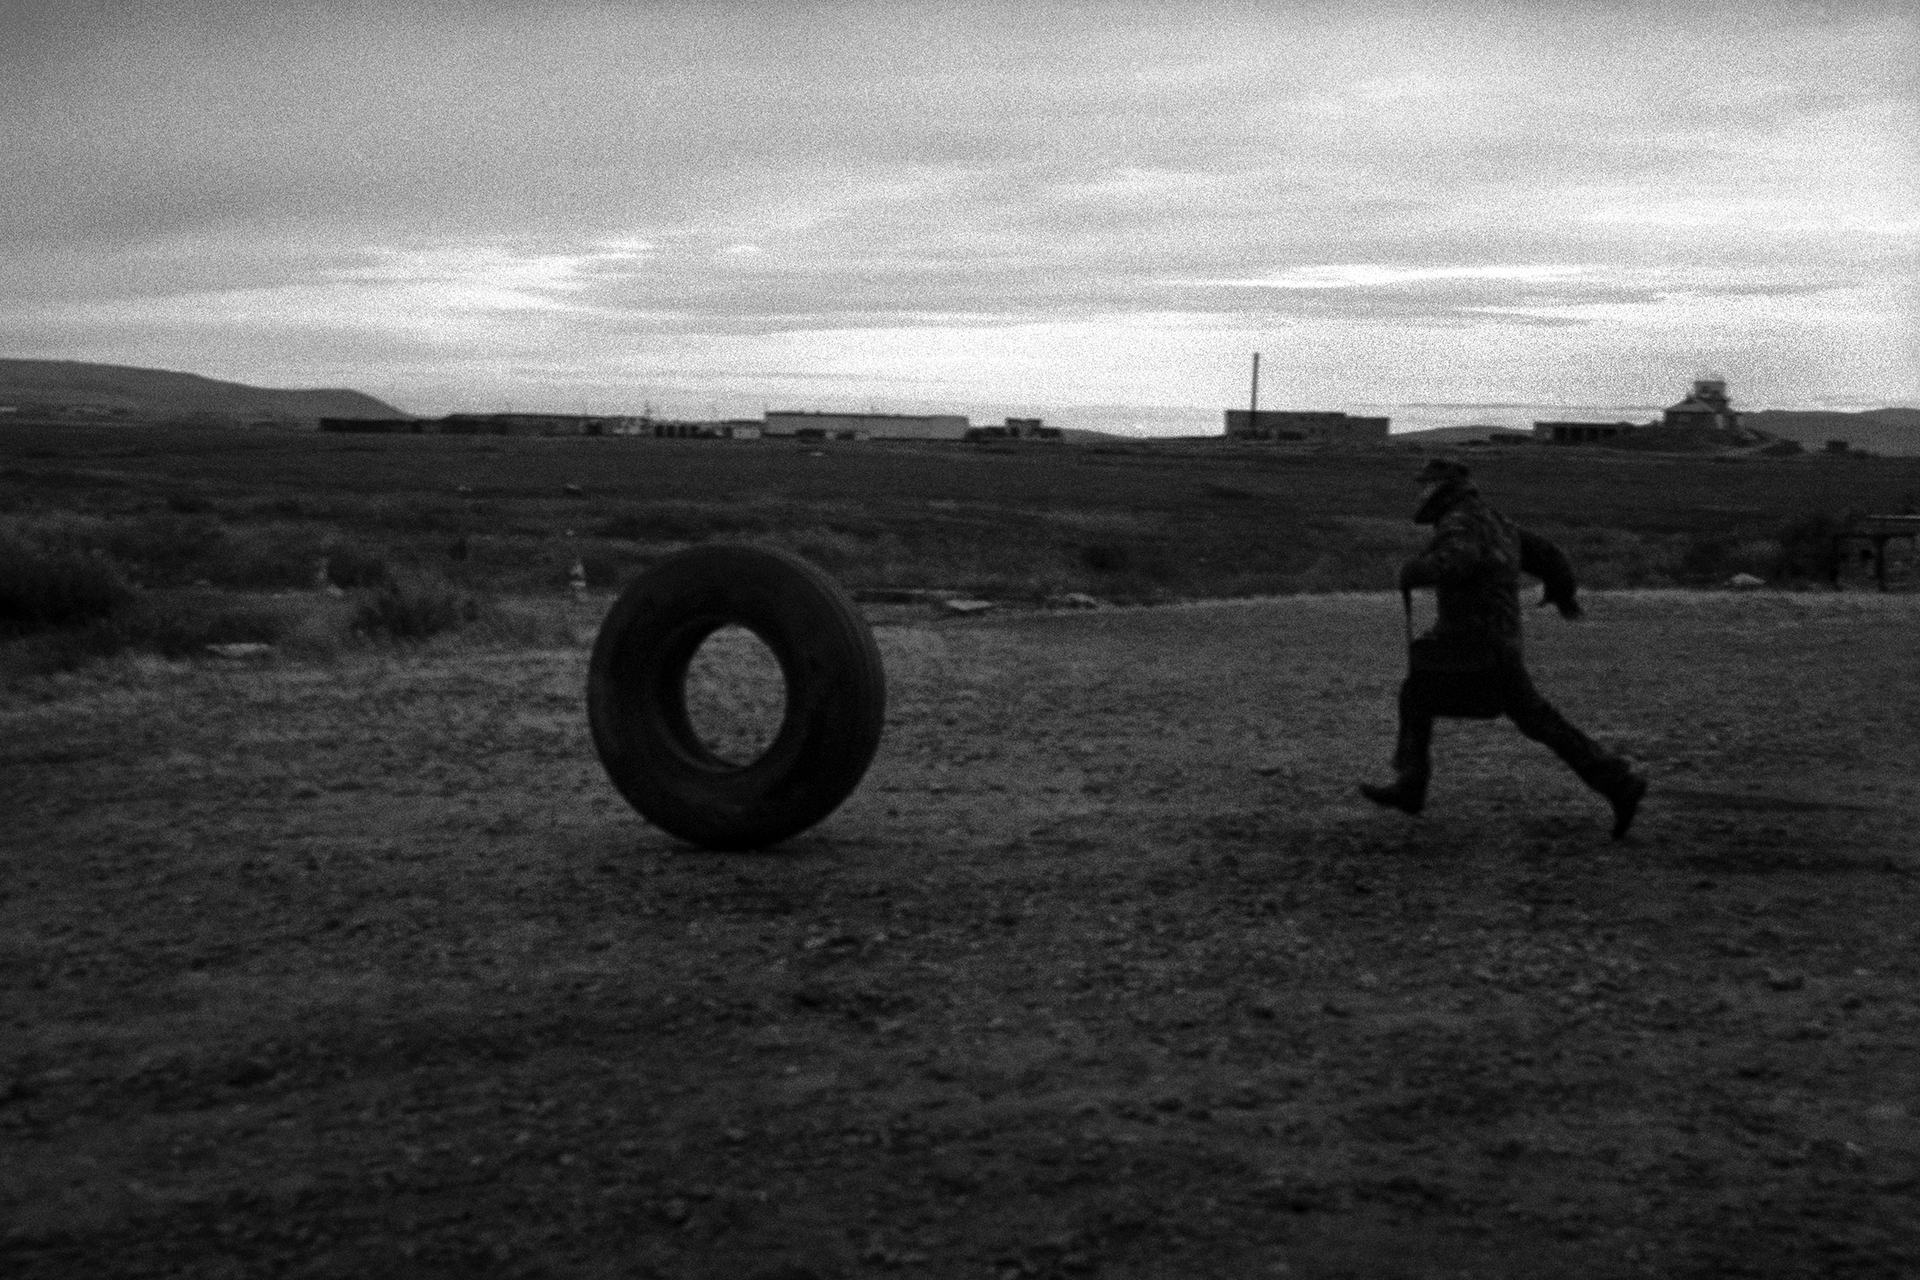 To catch up with a wheel, airport Anadyr', Chukotka, Russia (2007)